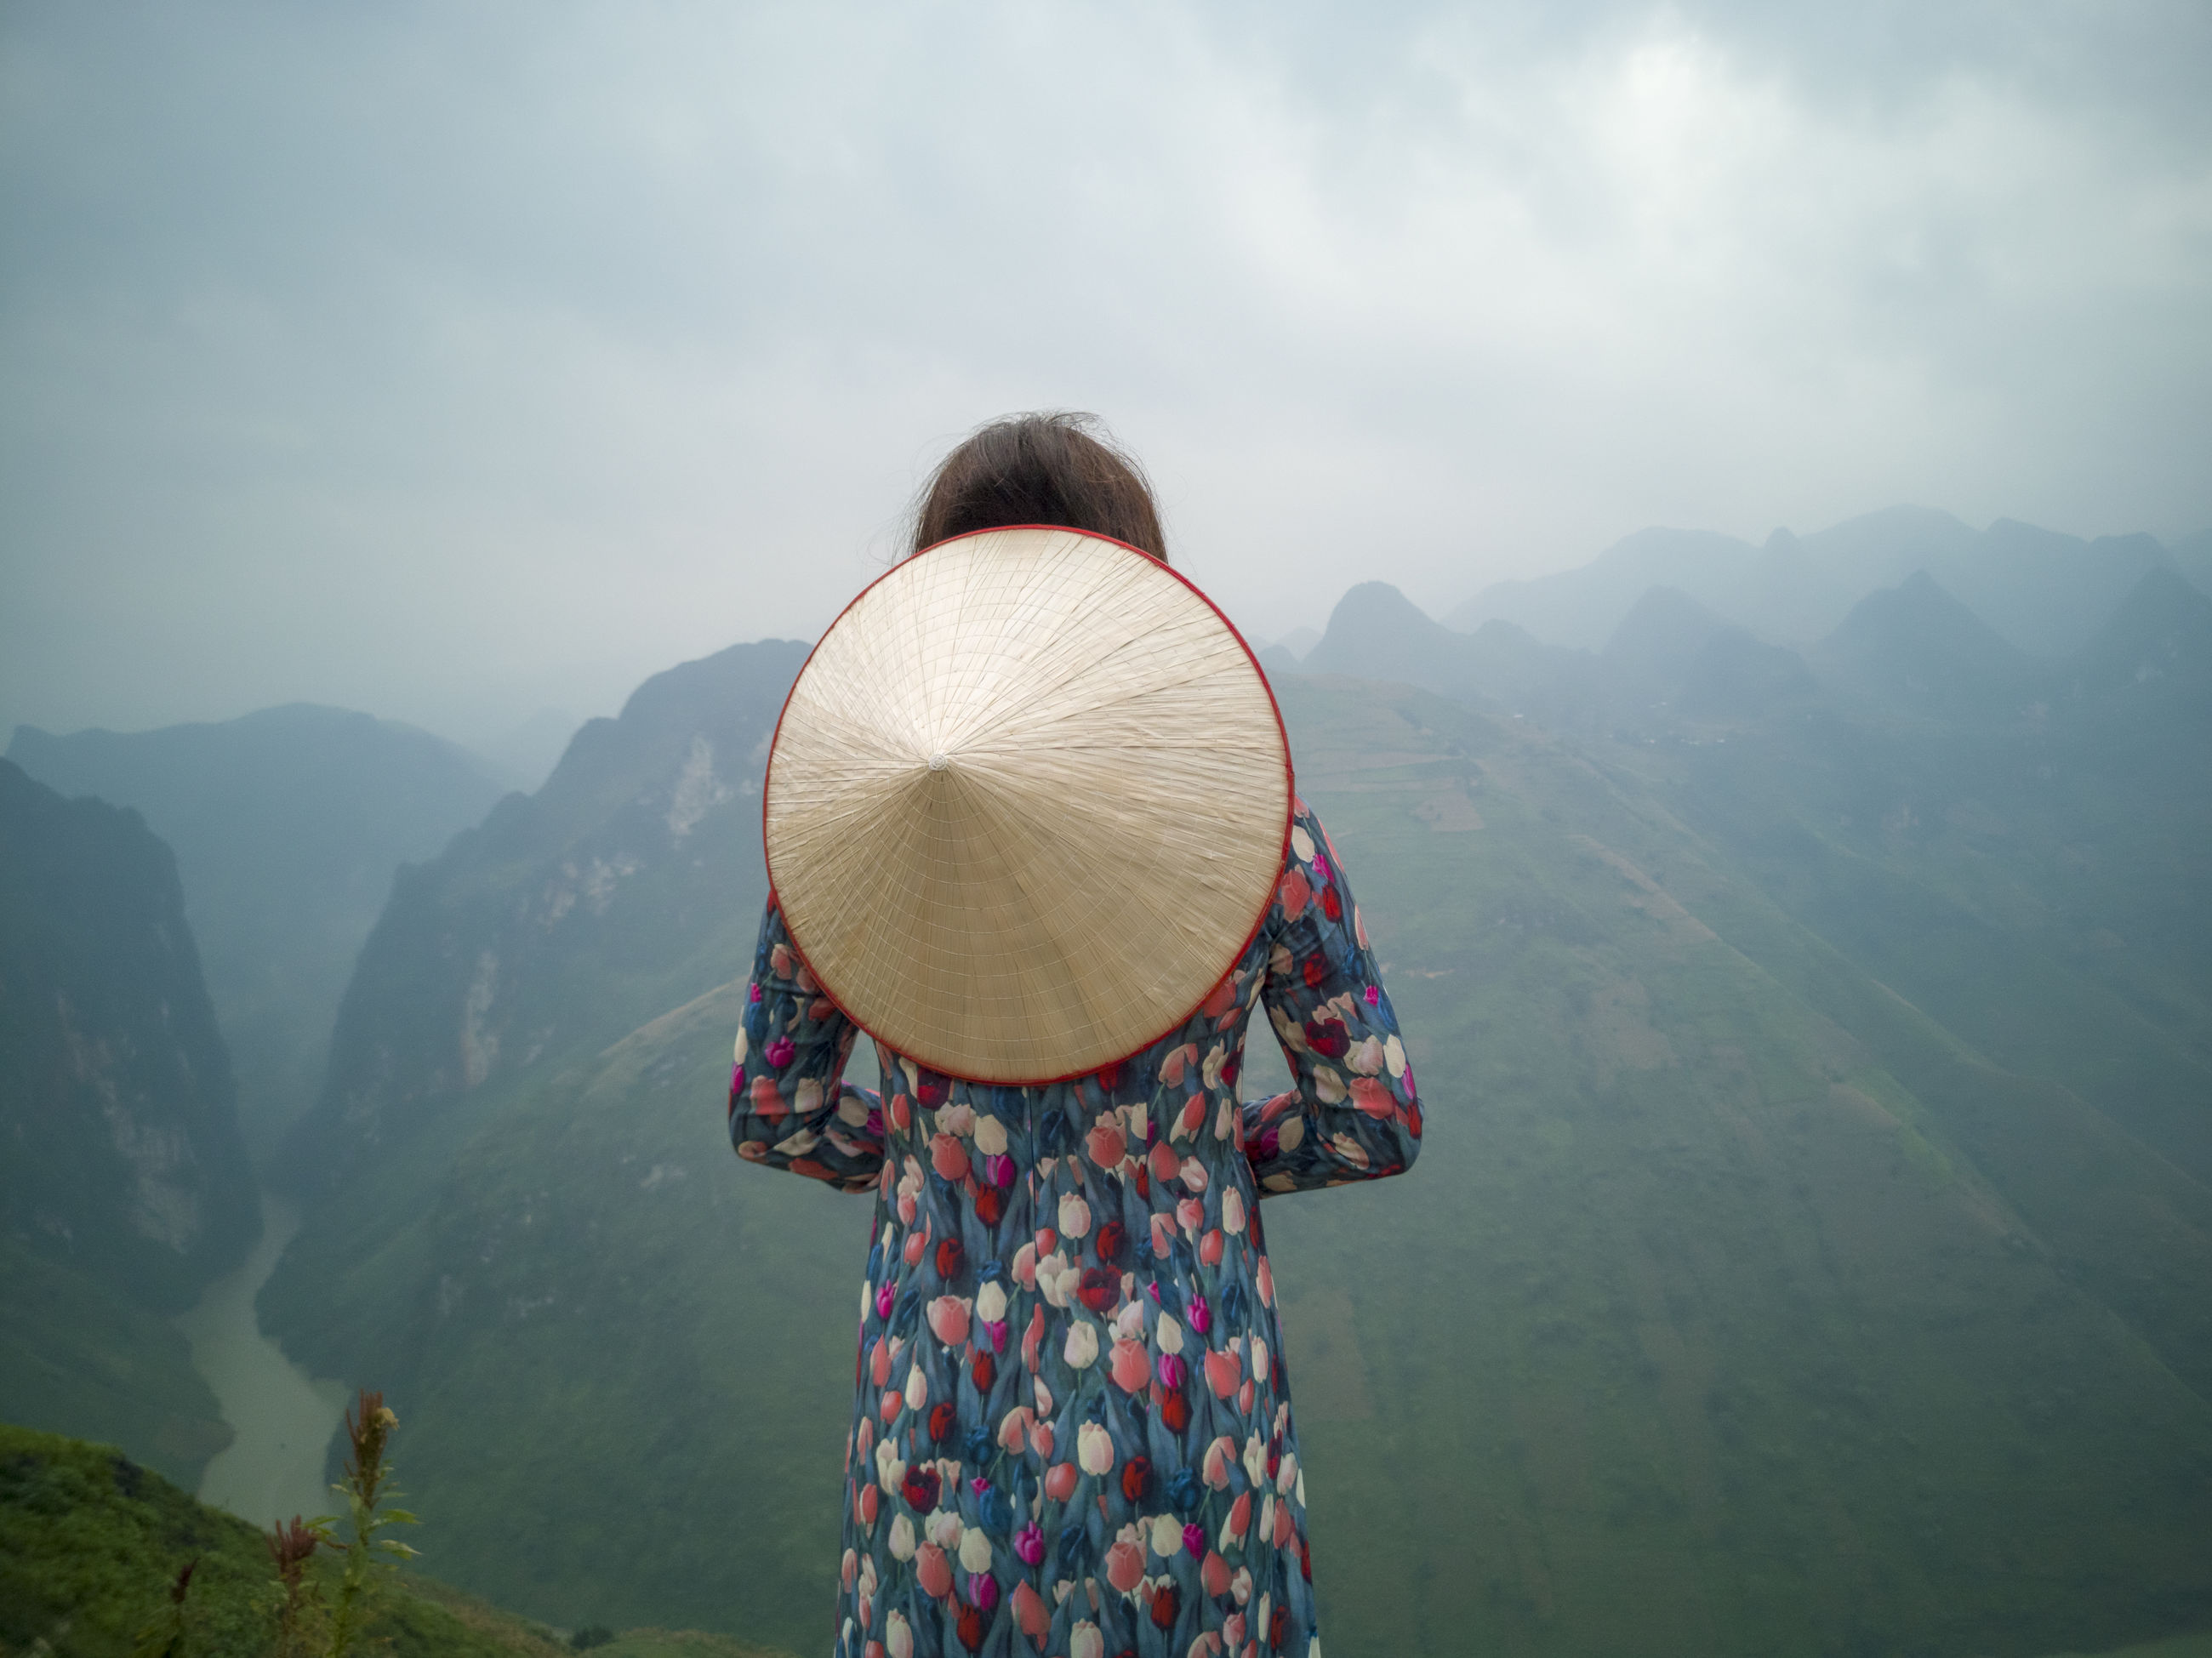 Rear view of woman with asian style conical hat standing against mountains in foggy weather